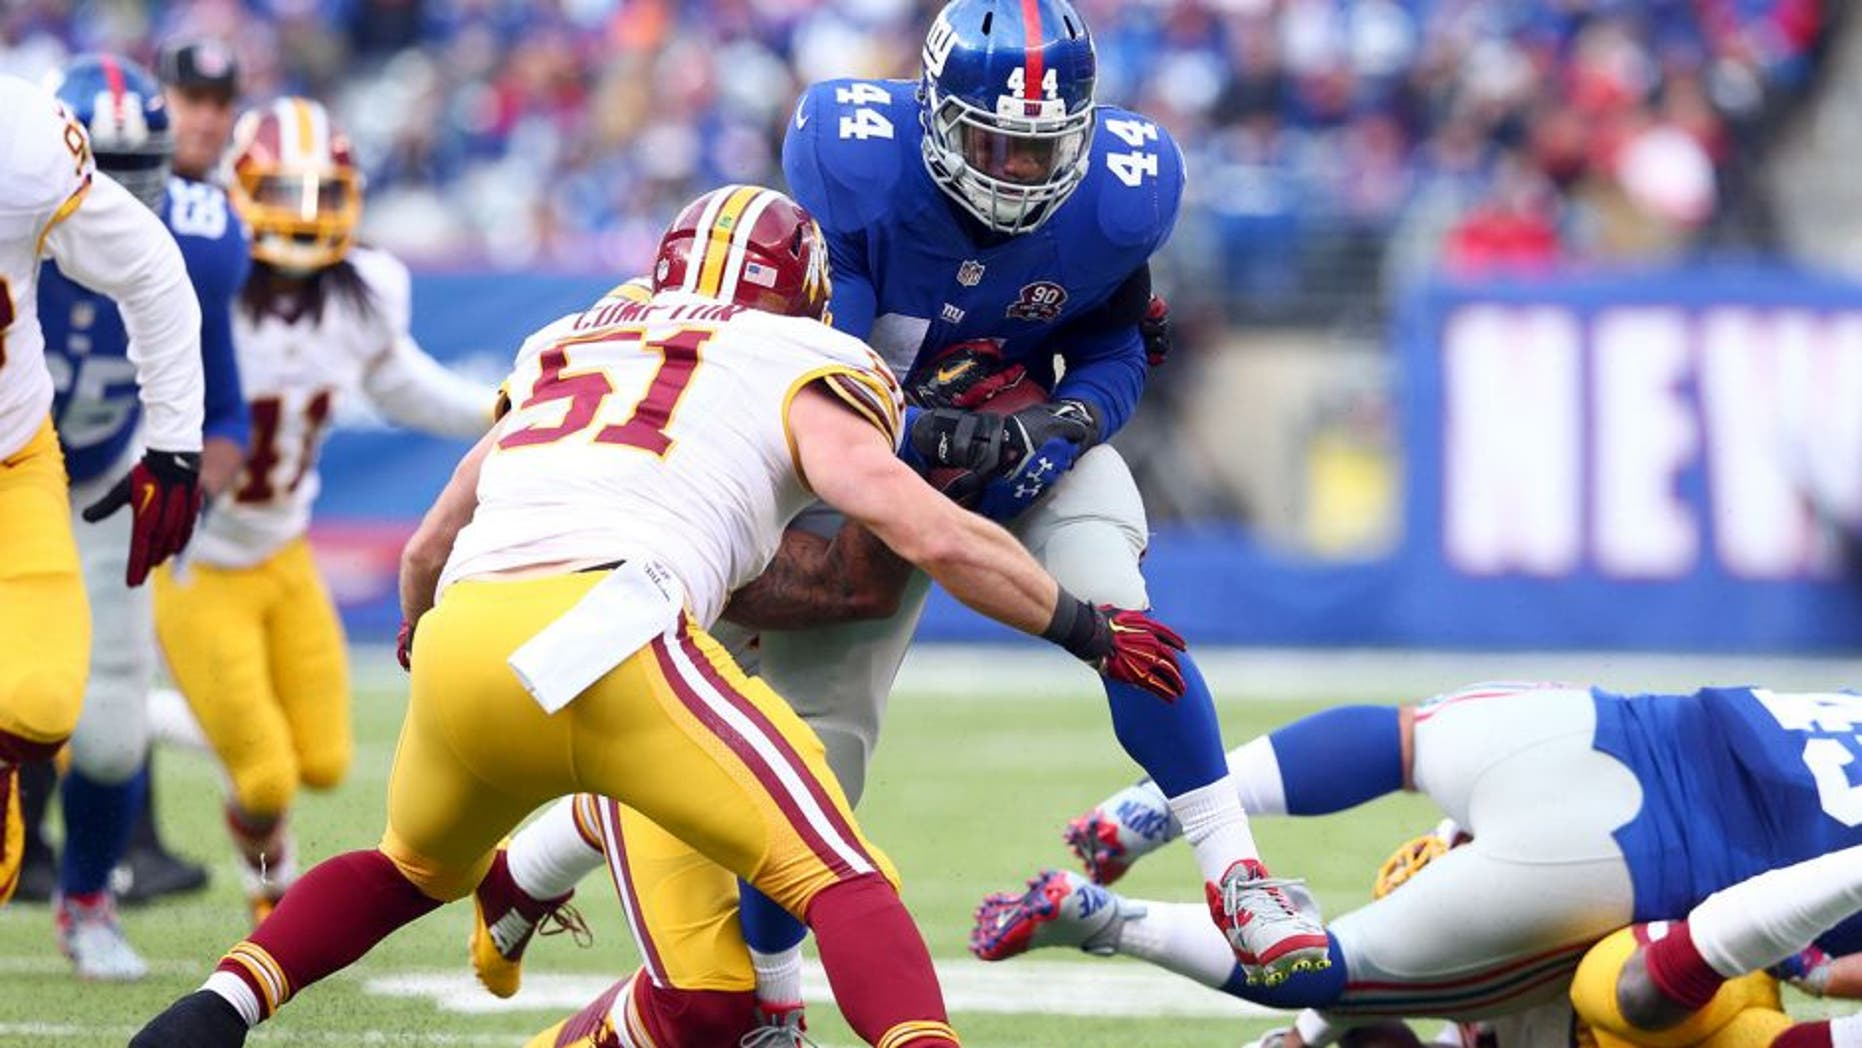 Dec 14, 2014; East Rutherford, NJ, USA; New York Giants running back Andre Williams (44) carries against Washington Redskins inside linebacker Will Compton (51) during the first quarter of a game at MetLife Stadium. Mandatory Credit: Brad Penner-USA TODAY Sports